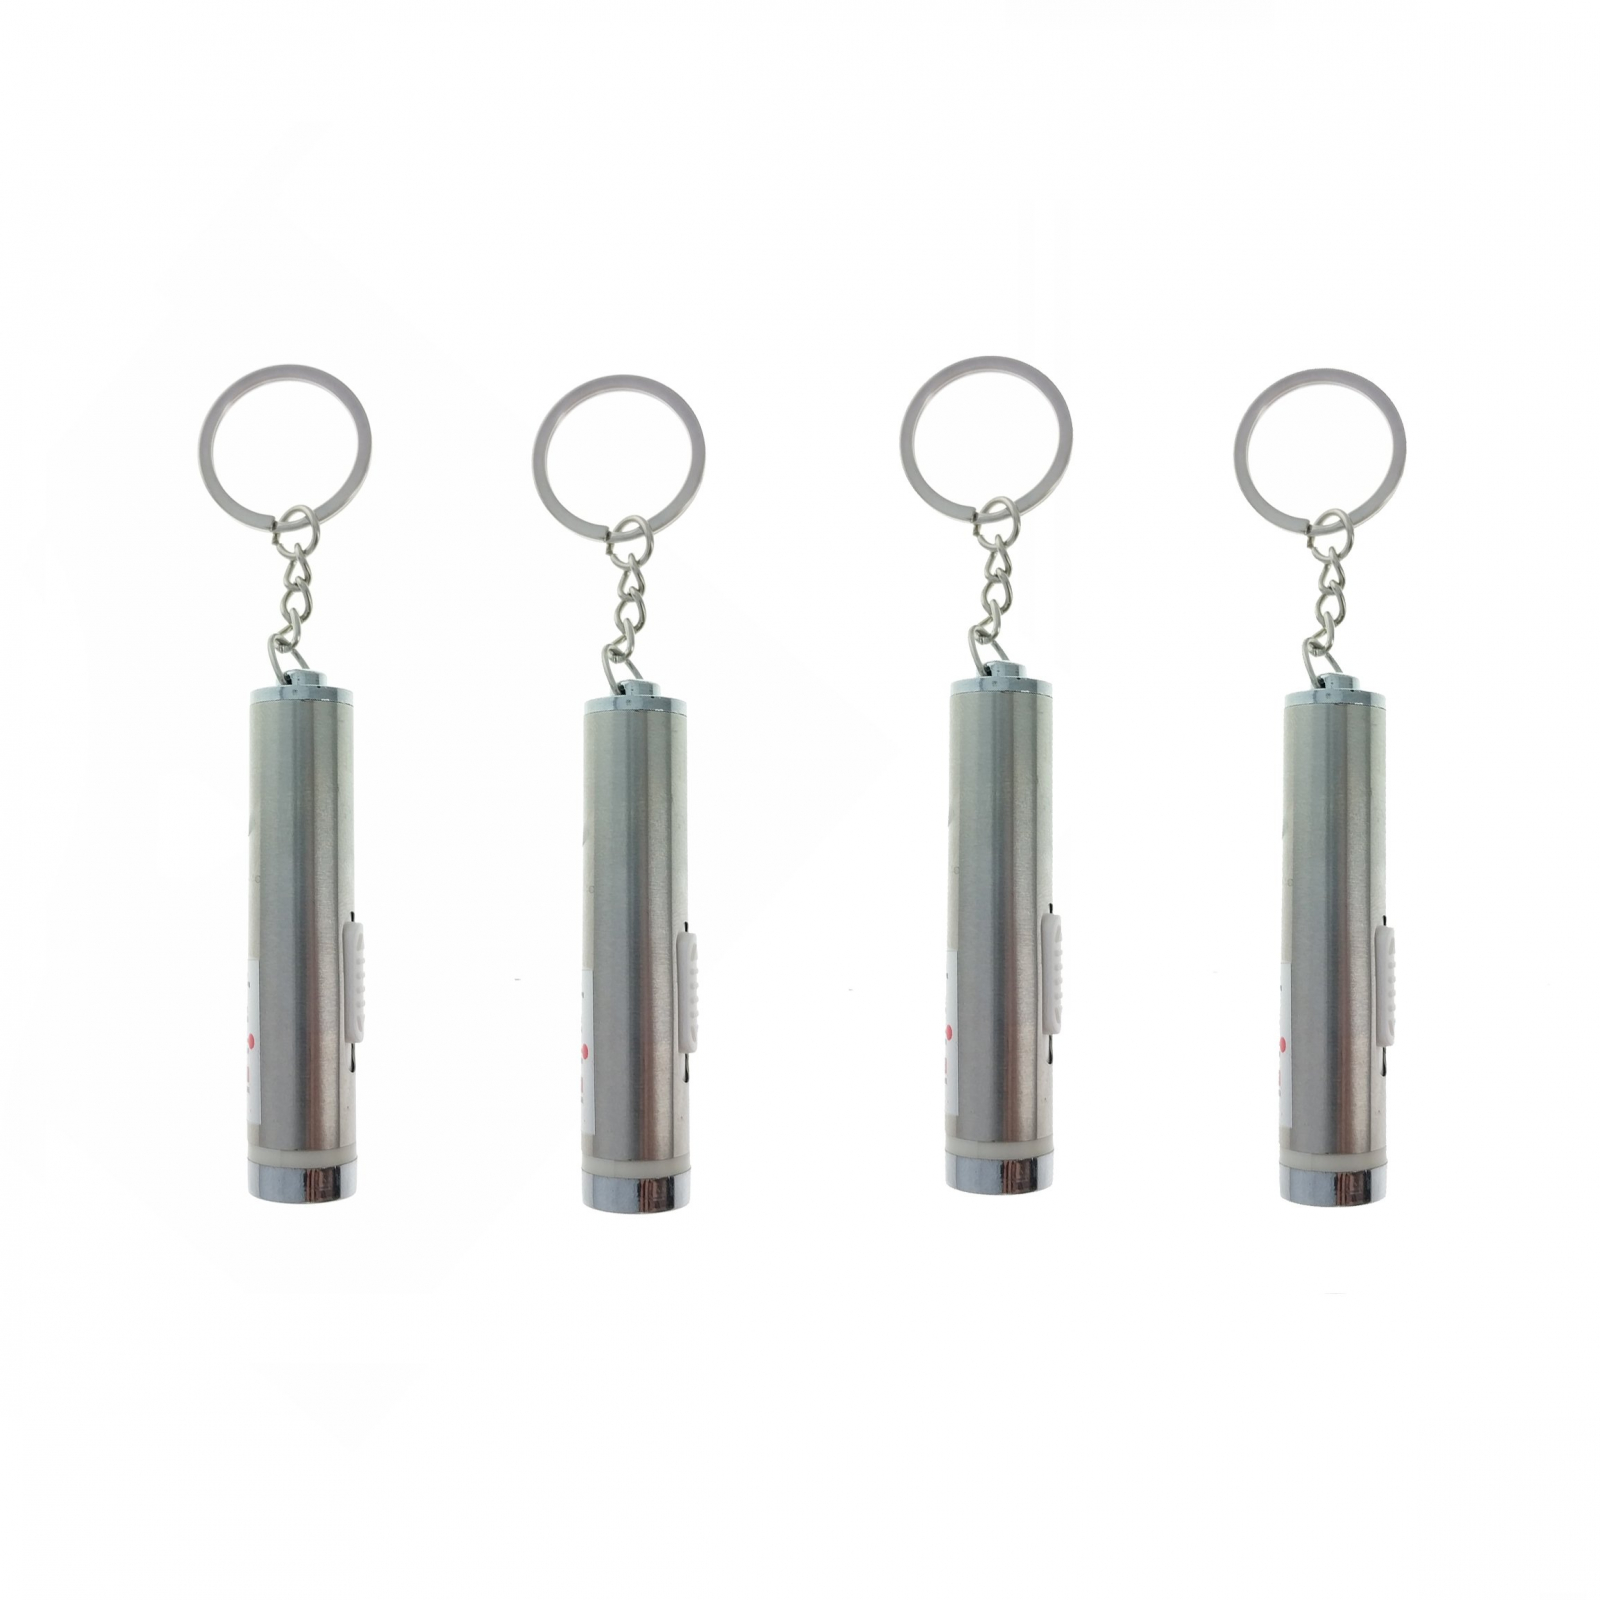 (4 Pack) ASR Laser Pointer Key Chain Stainless Steel Travel Tool Office